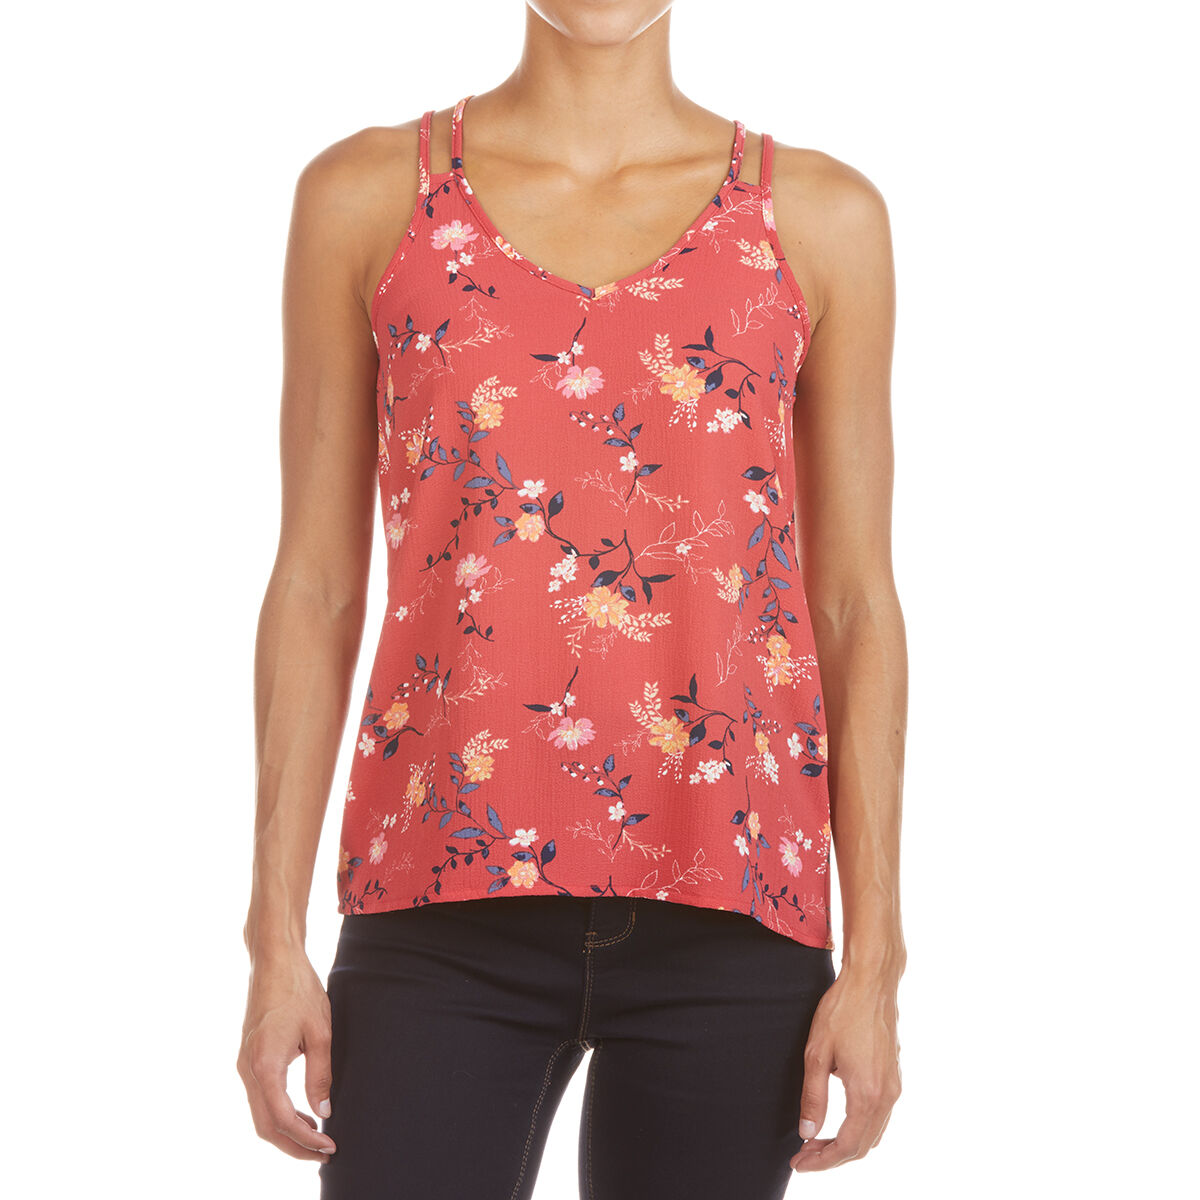 Pink Rose Juniors' Double Shoulder Strap Tank Top - Red, S